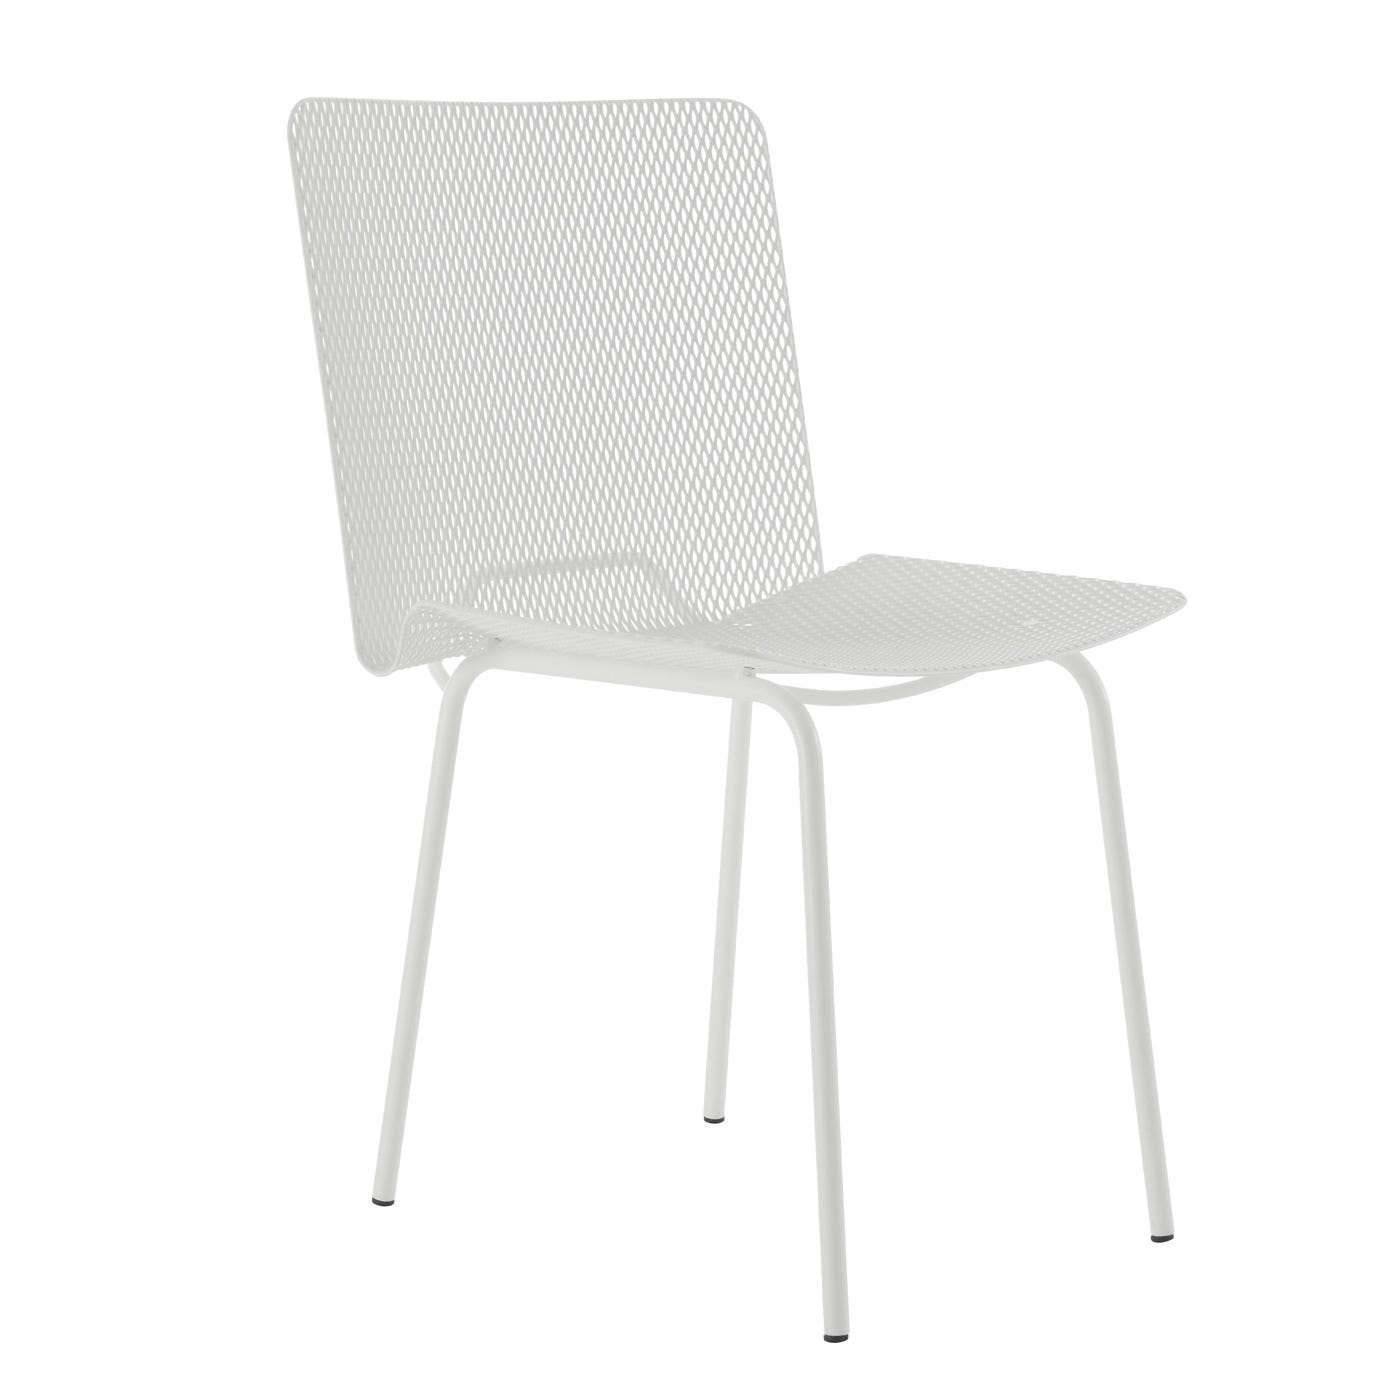 Grillage Set of 2 Chairs White